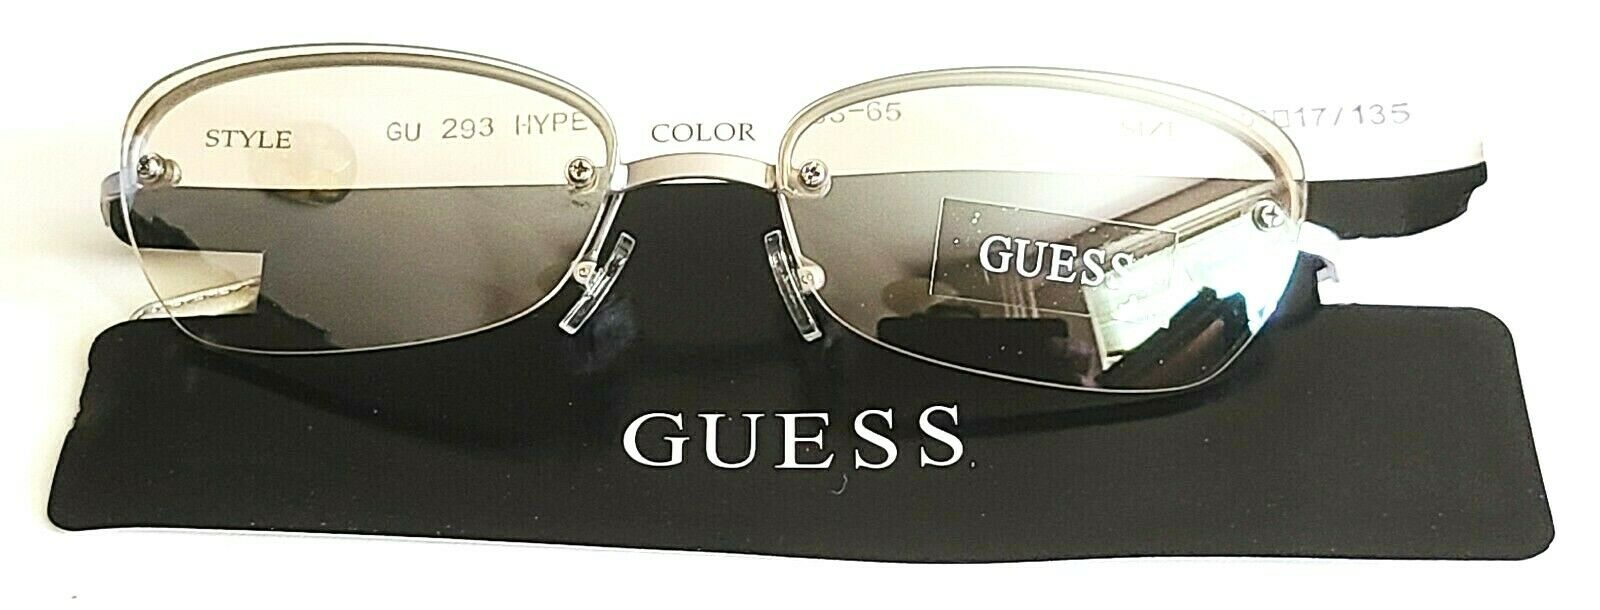 GUESS GU 293 Hype SS-65 Silver Oval Sunglasses 56/17 135 Clear Tint